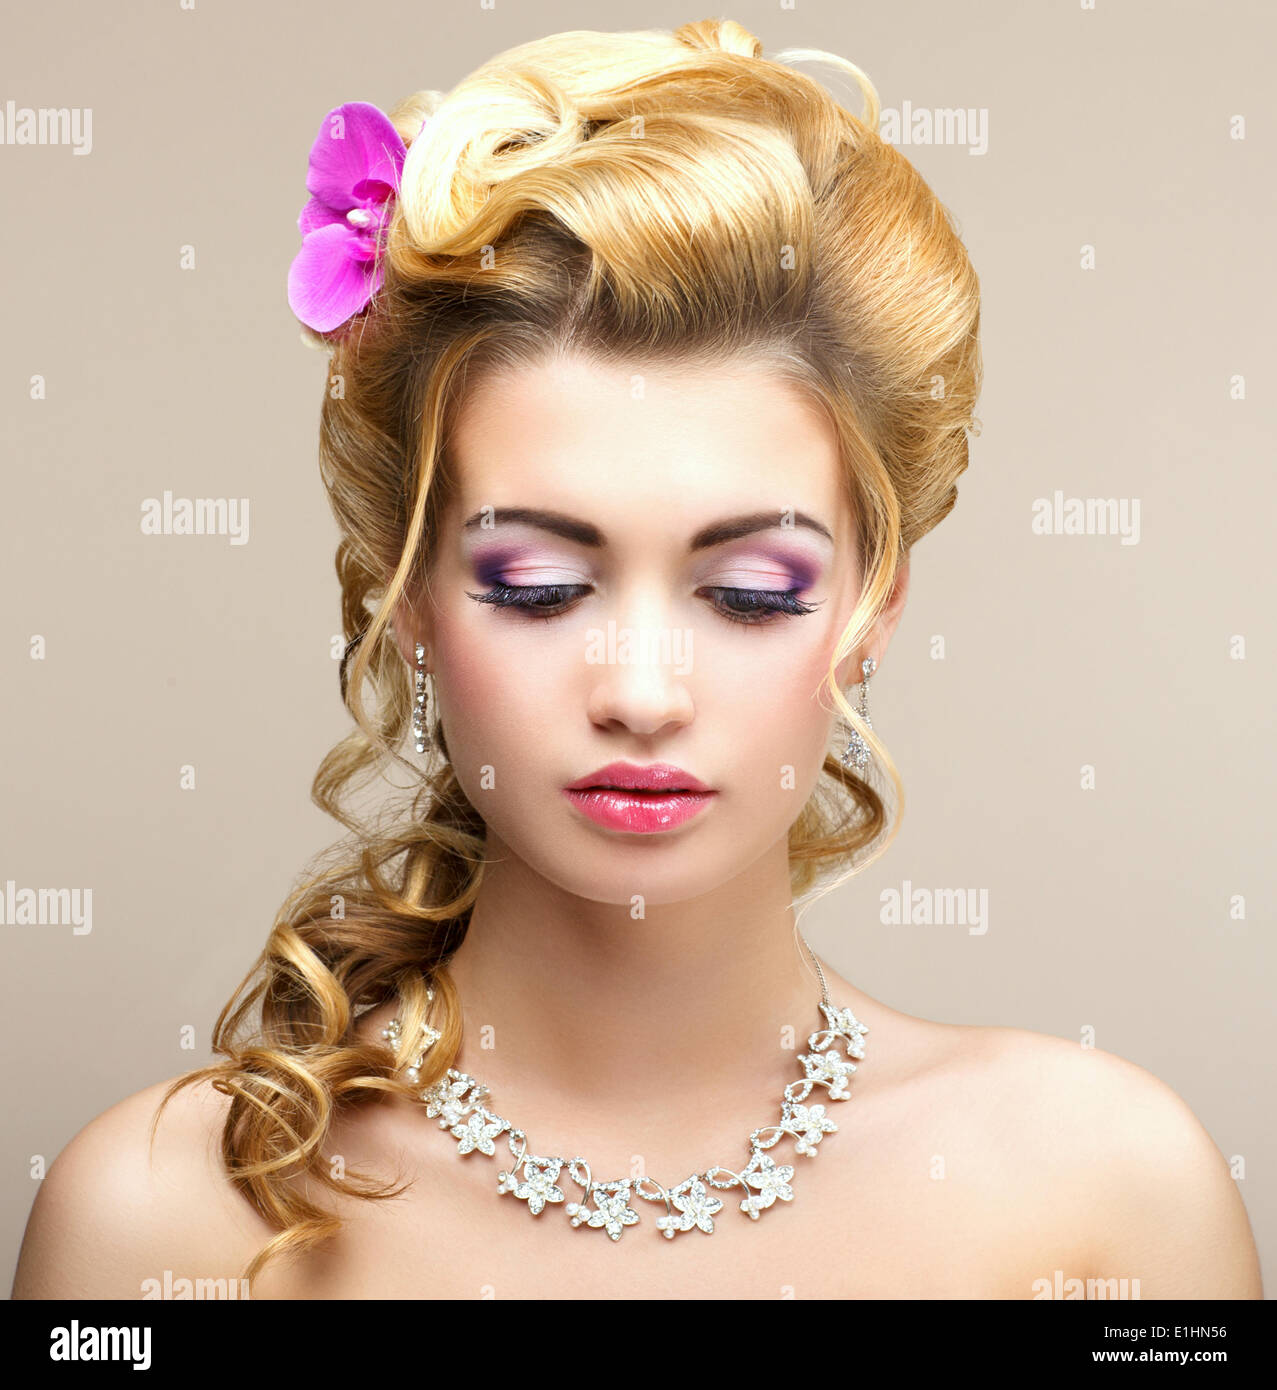 Beauty Lady. Dreaming Woman with Jewelry - Platinum Necklace and Earrings. Tenderness - Stock Image